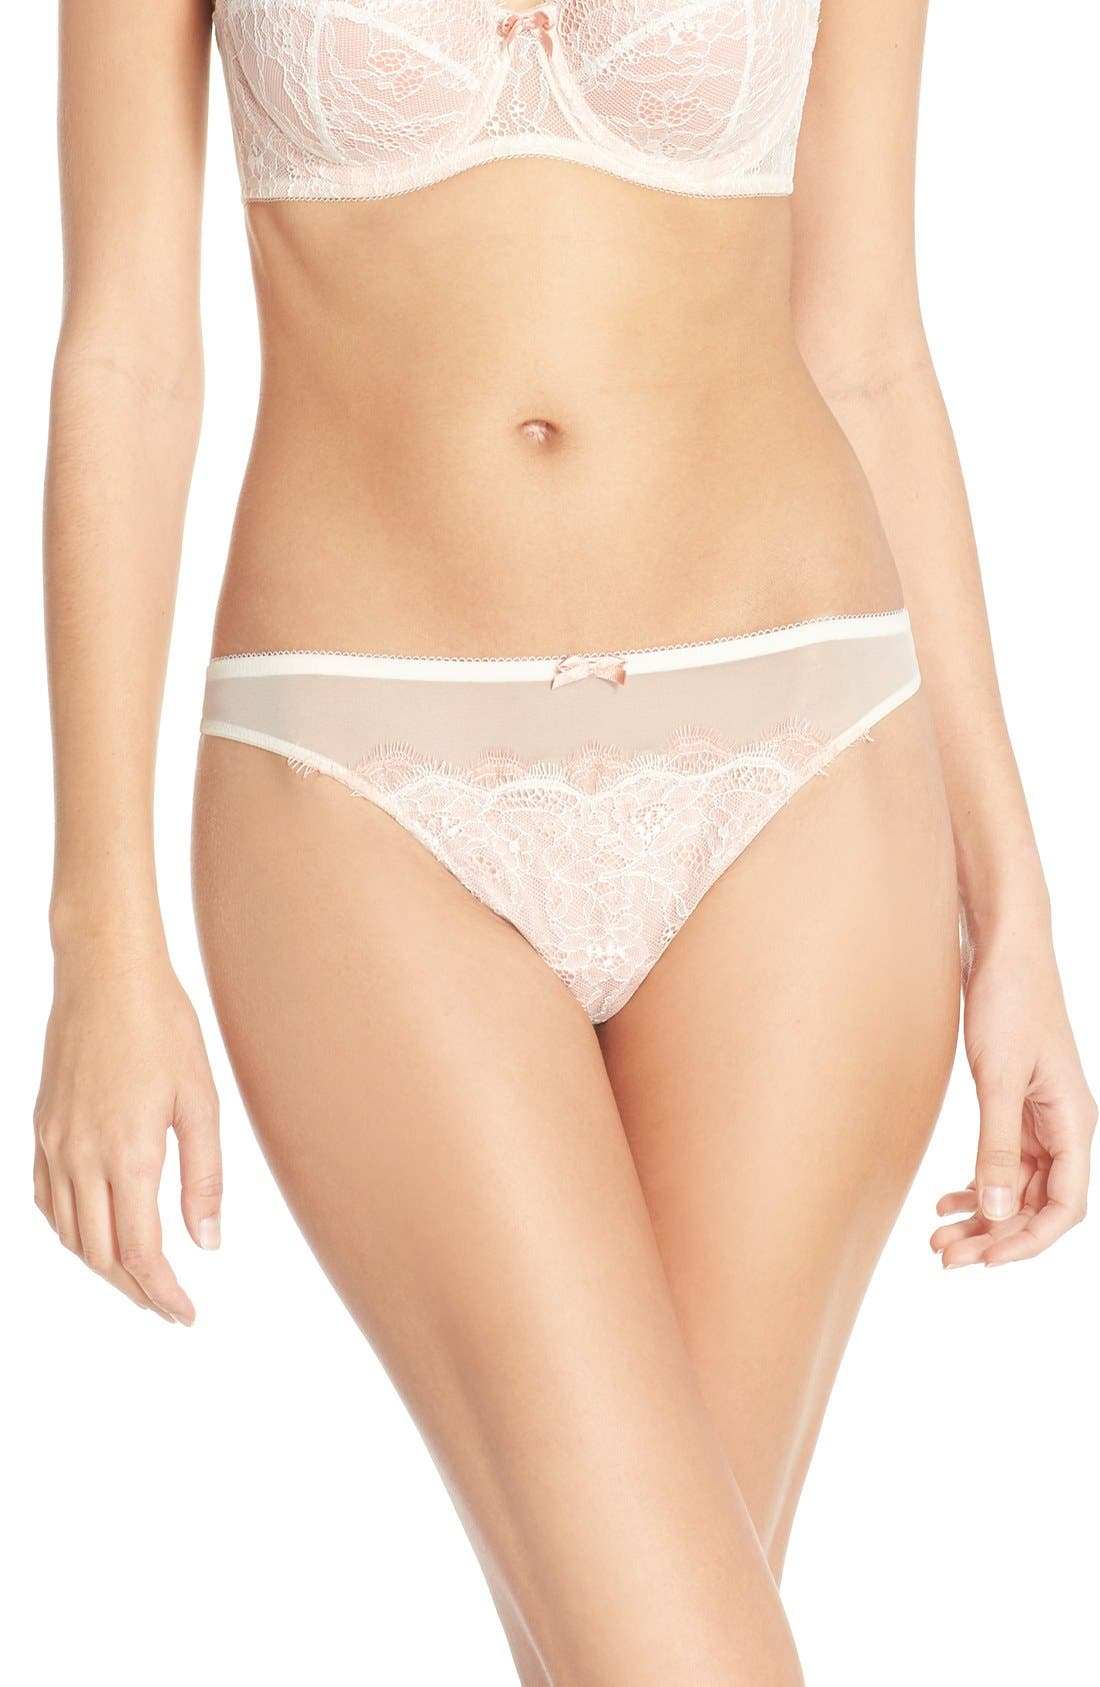 'b.sultry' Lace Front Thong,                             Main thumbnail 1, color,                             VANILLA ICE/ PEACH BEIGE